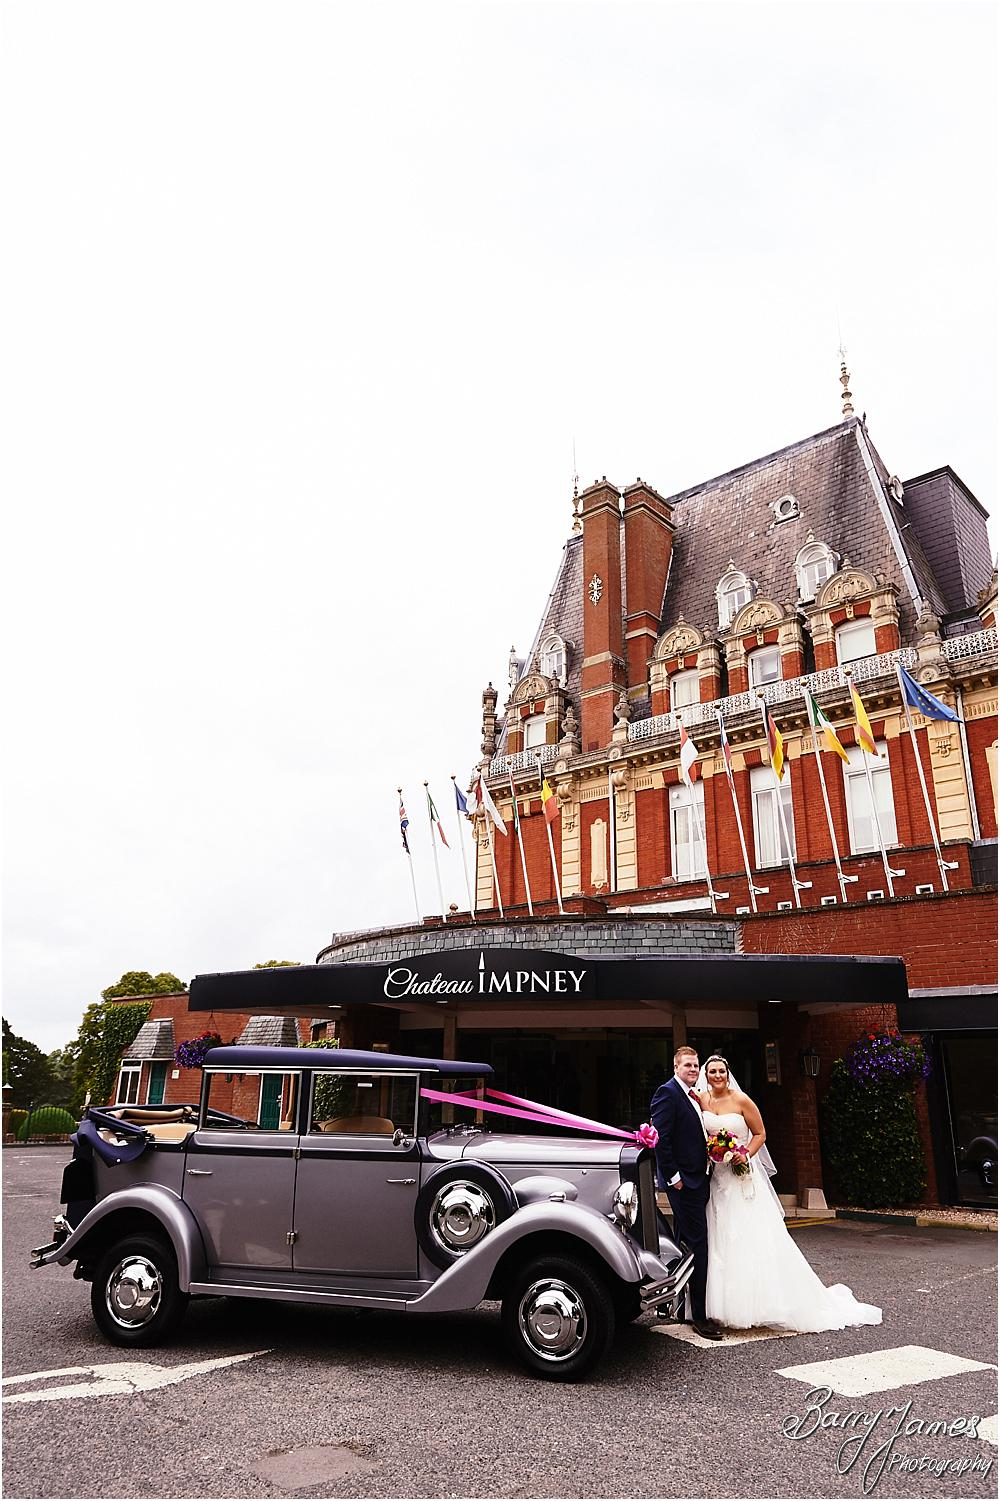 Arriving in style at Chateau Impney at Droitwich by Wedding Photographer Barry James